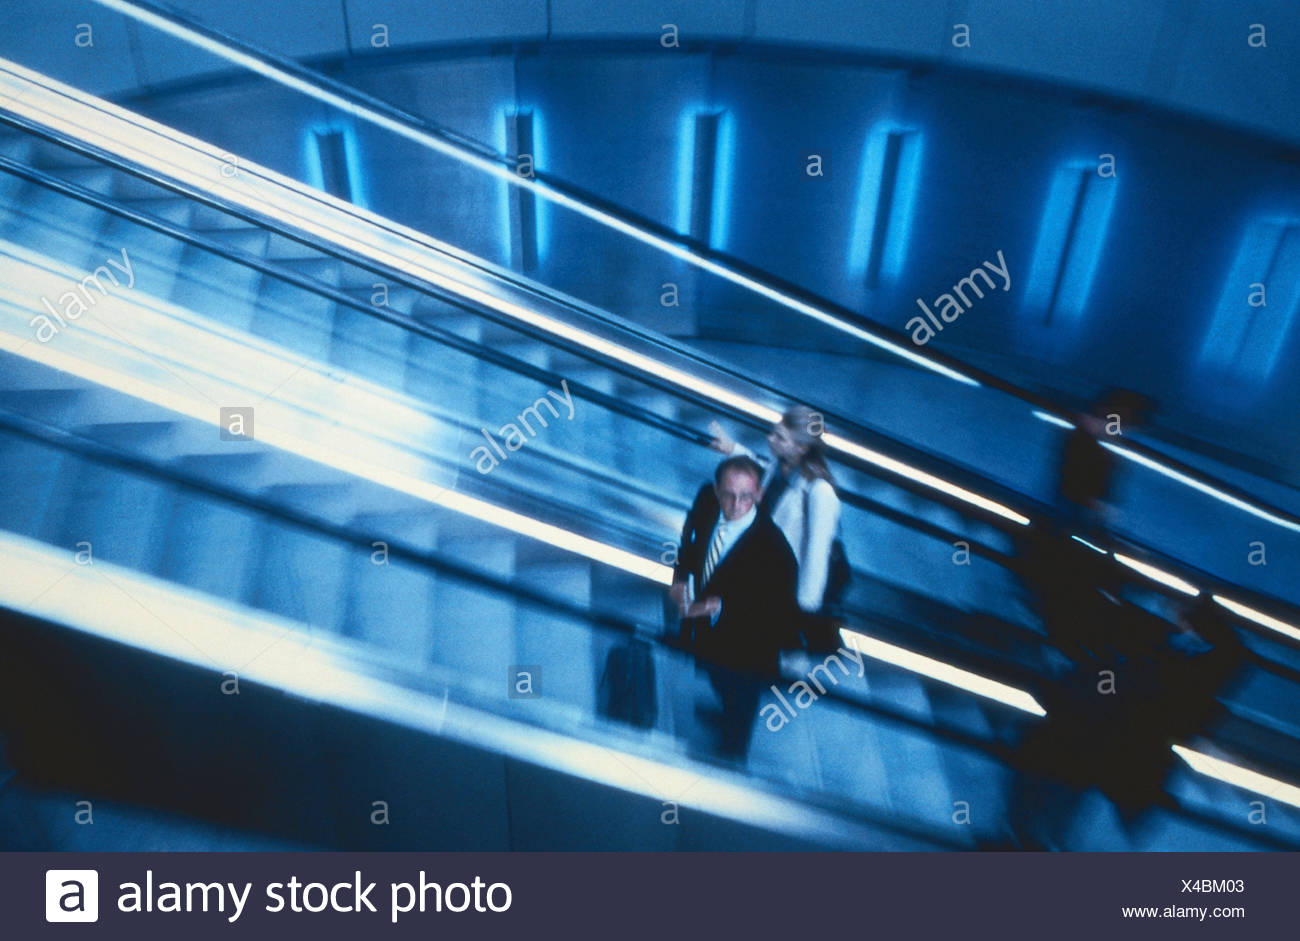 Airport terminals, detail, escalator, travellers, inside, airport, Dusseldorf, manager, upward, stairs, movably, personal transport, promotion, business people, go away, arrival - Stock Image